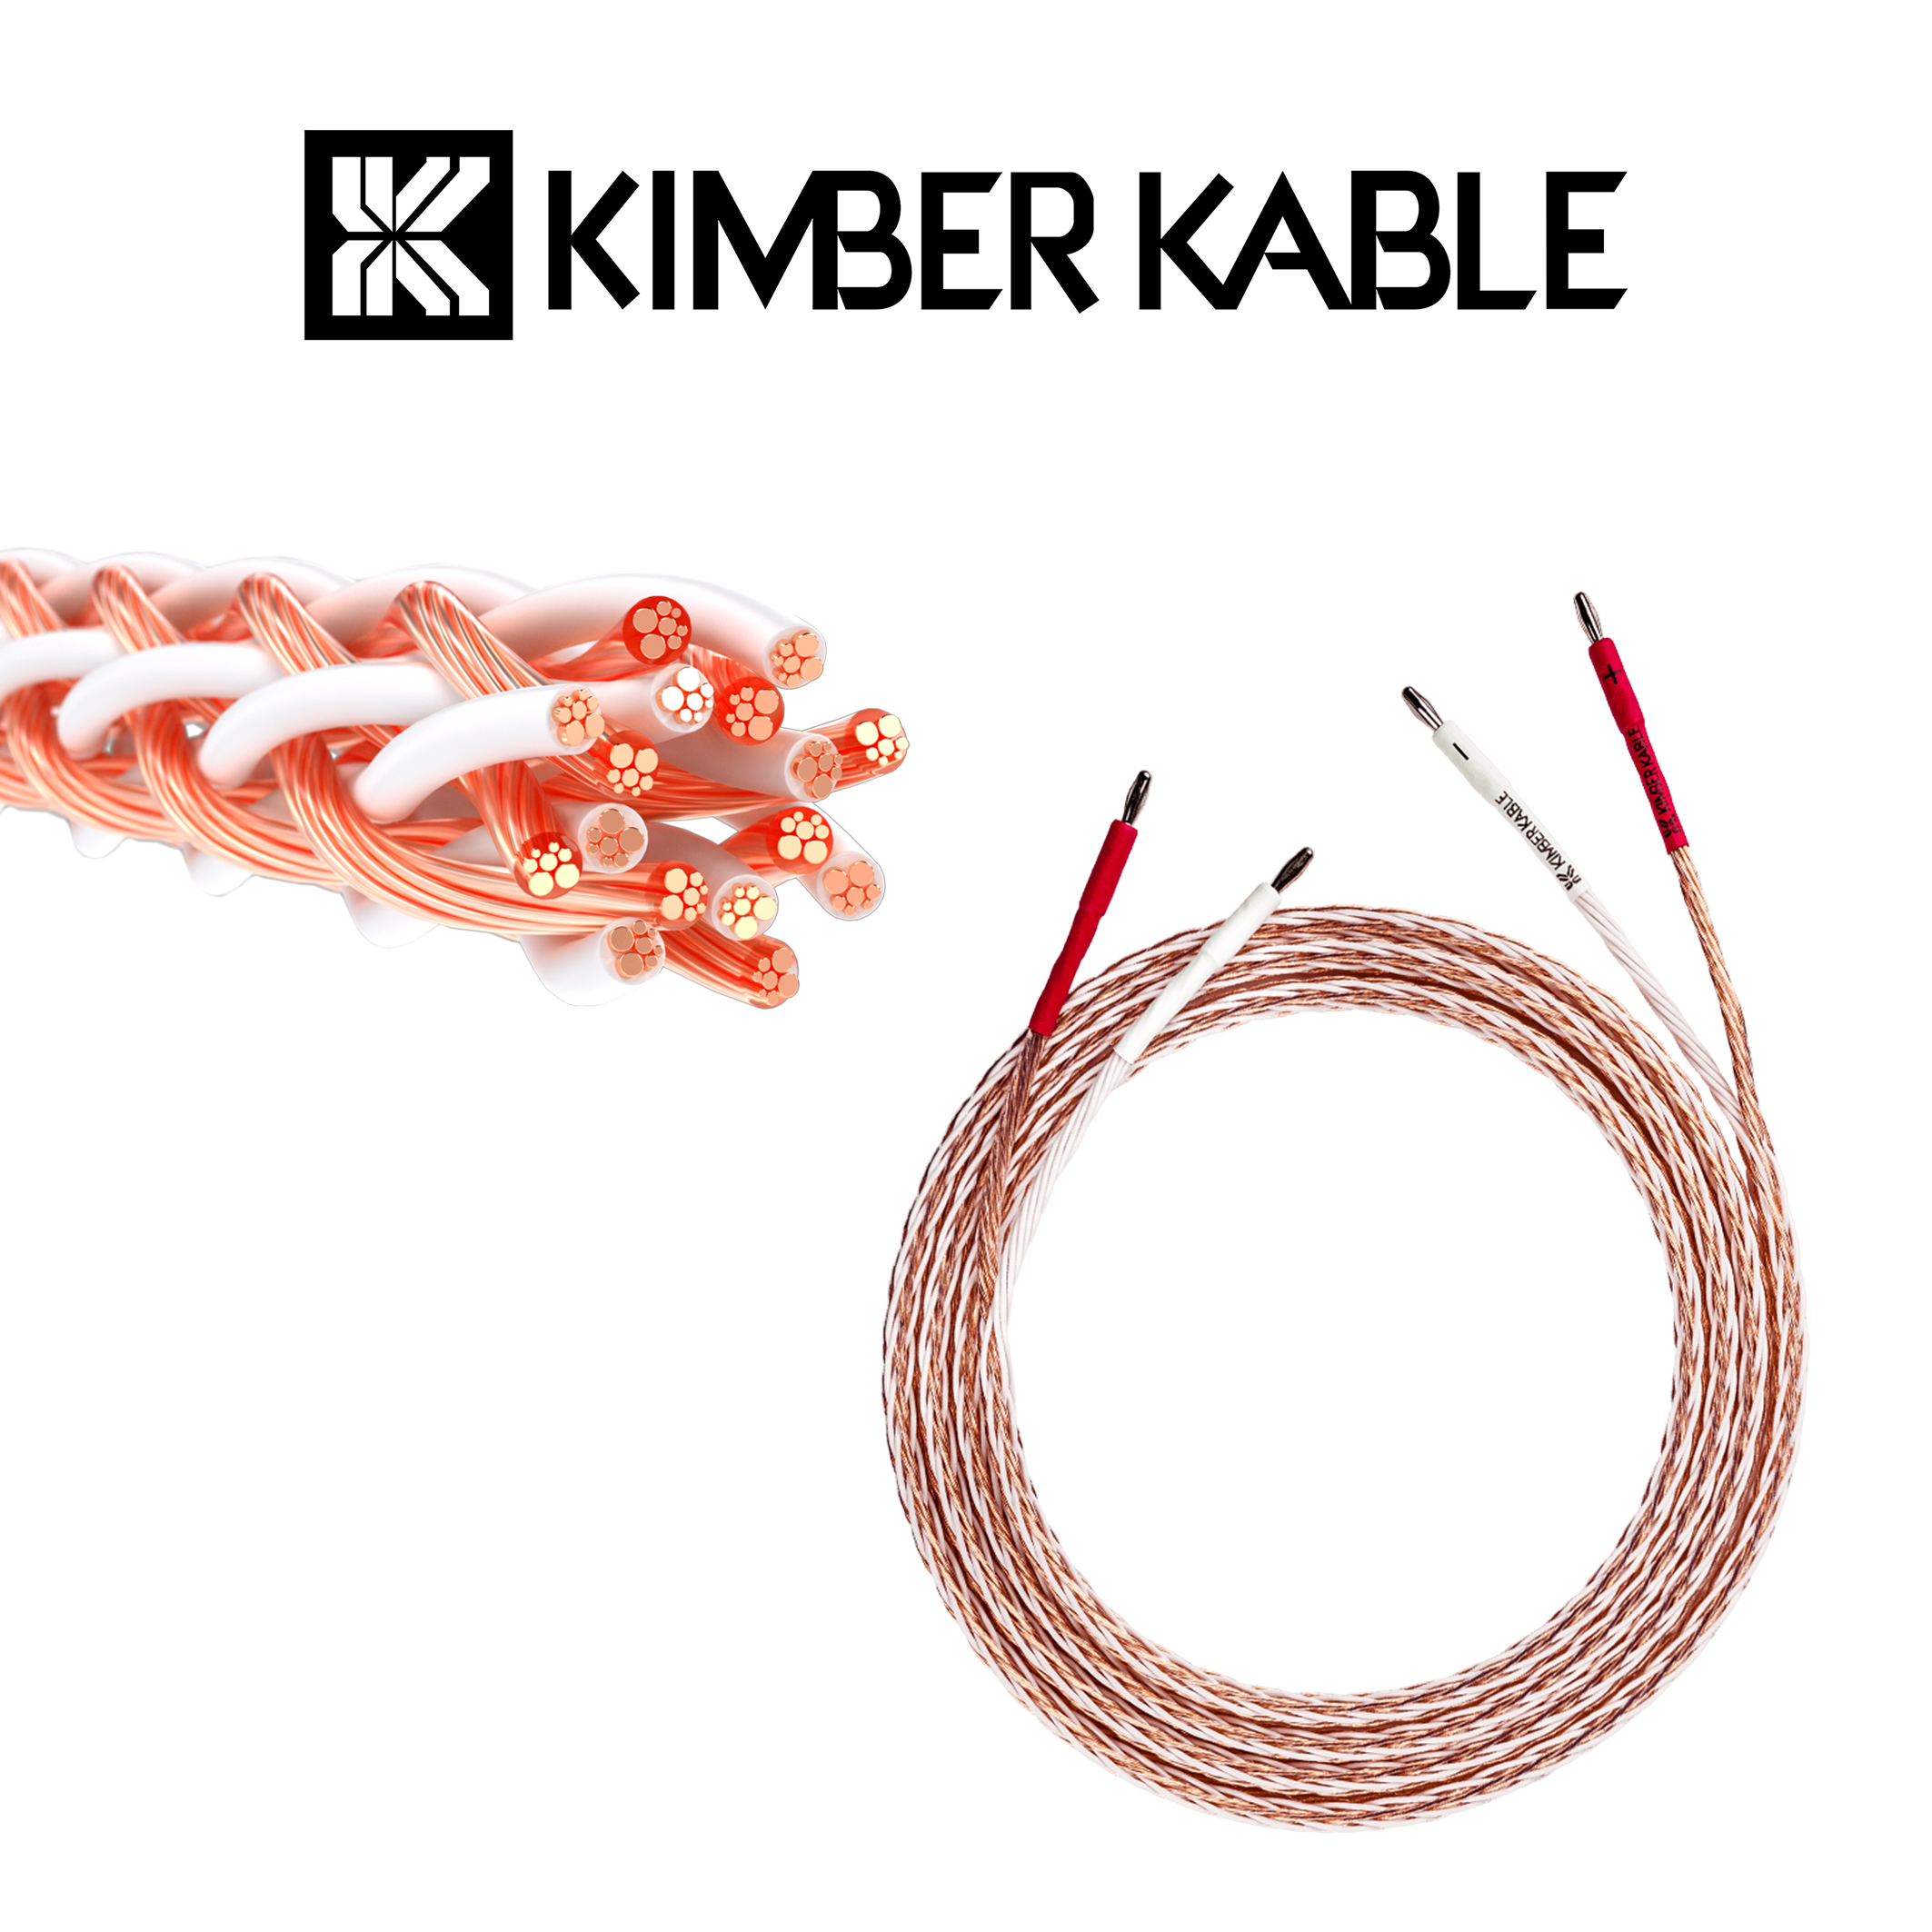 Kimber Kable - Norman Audio